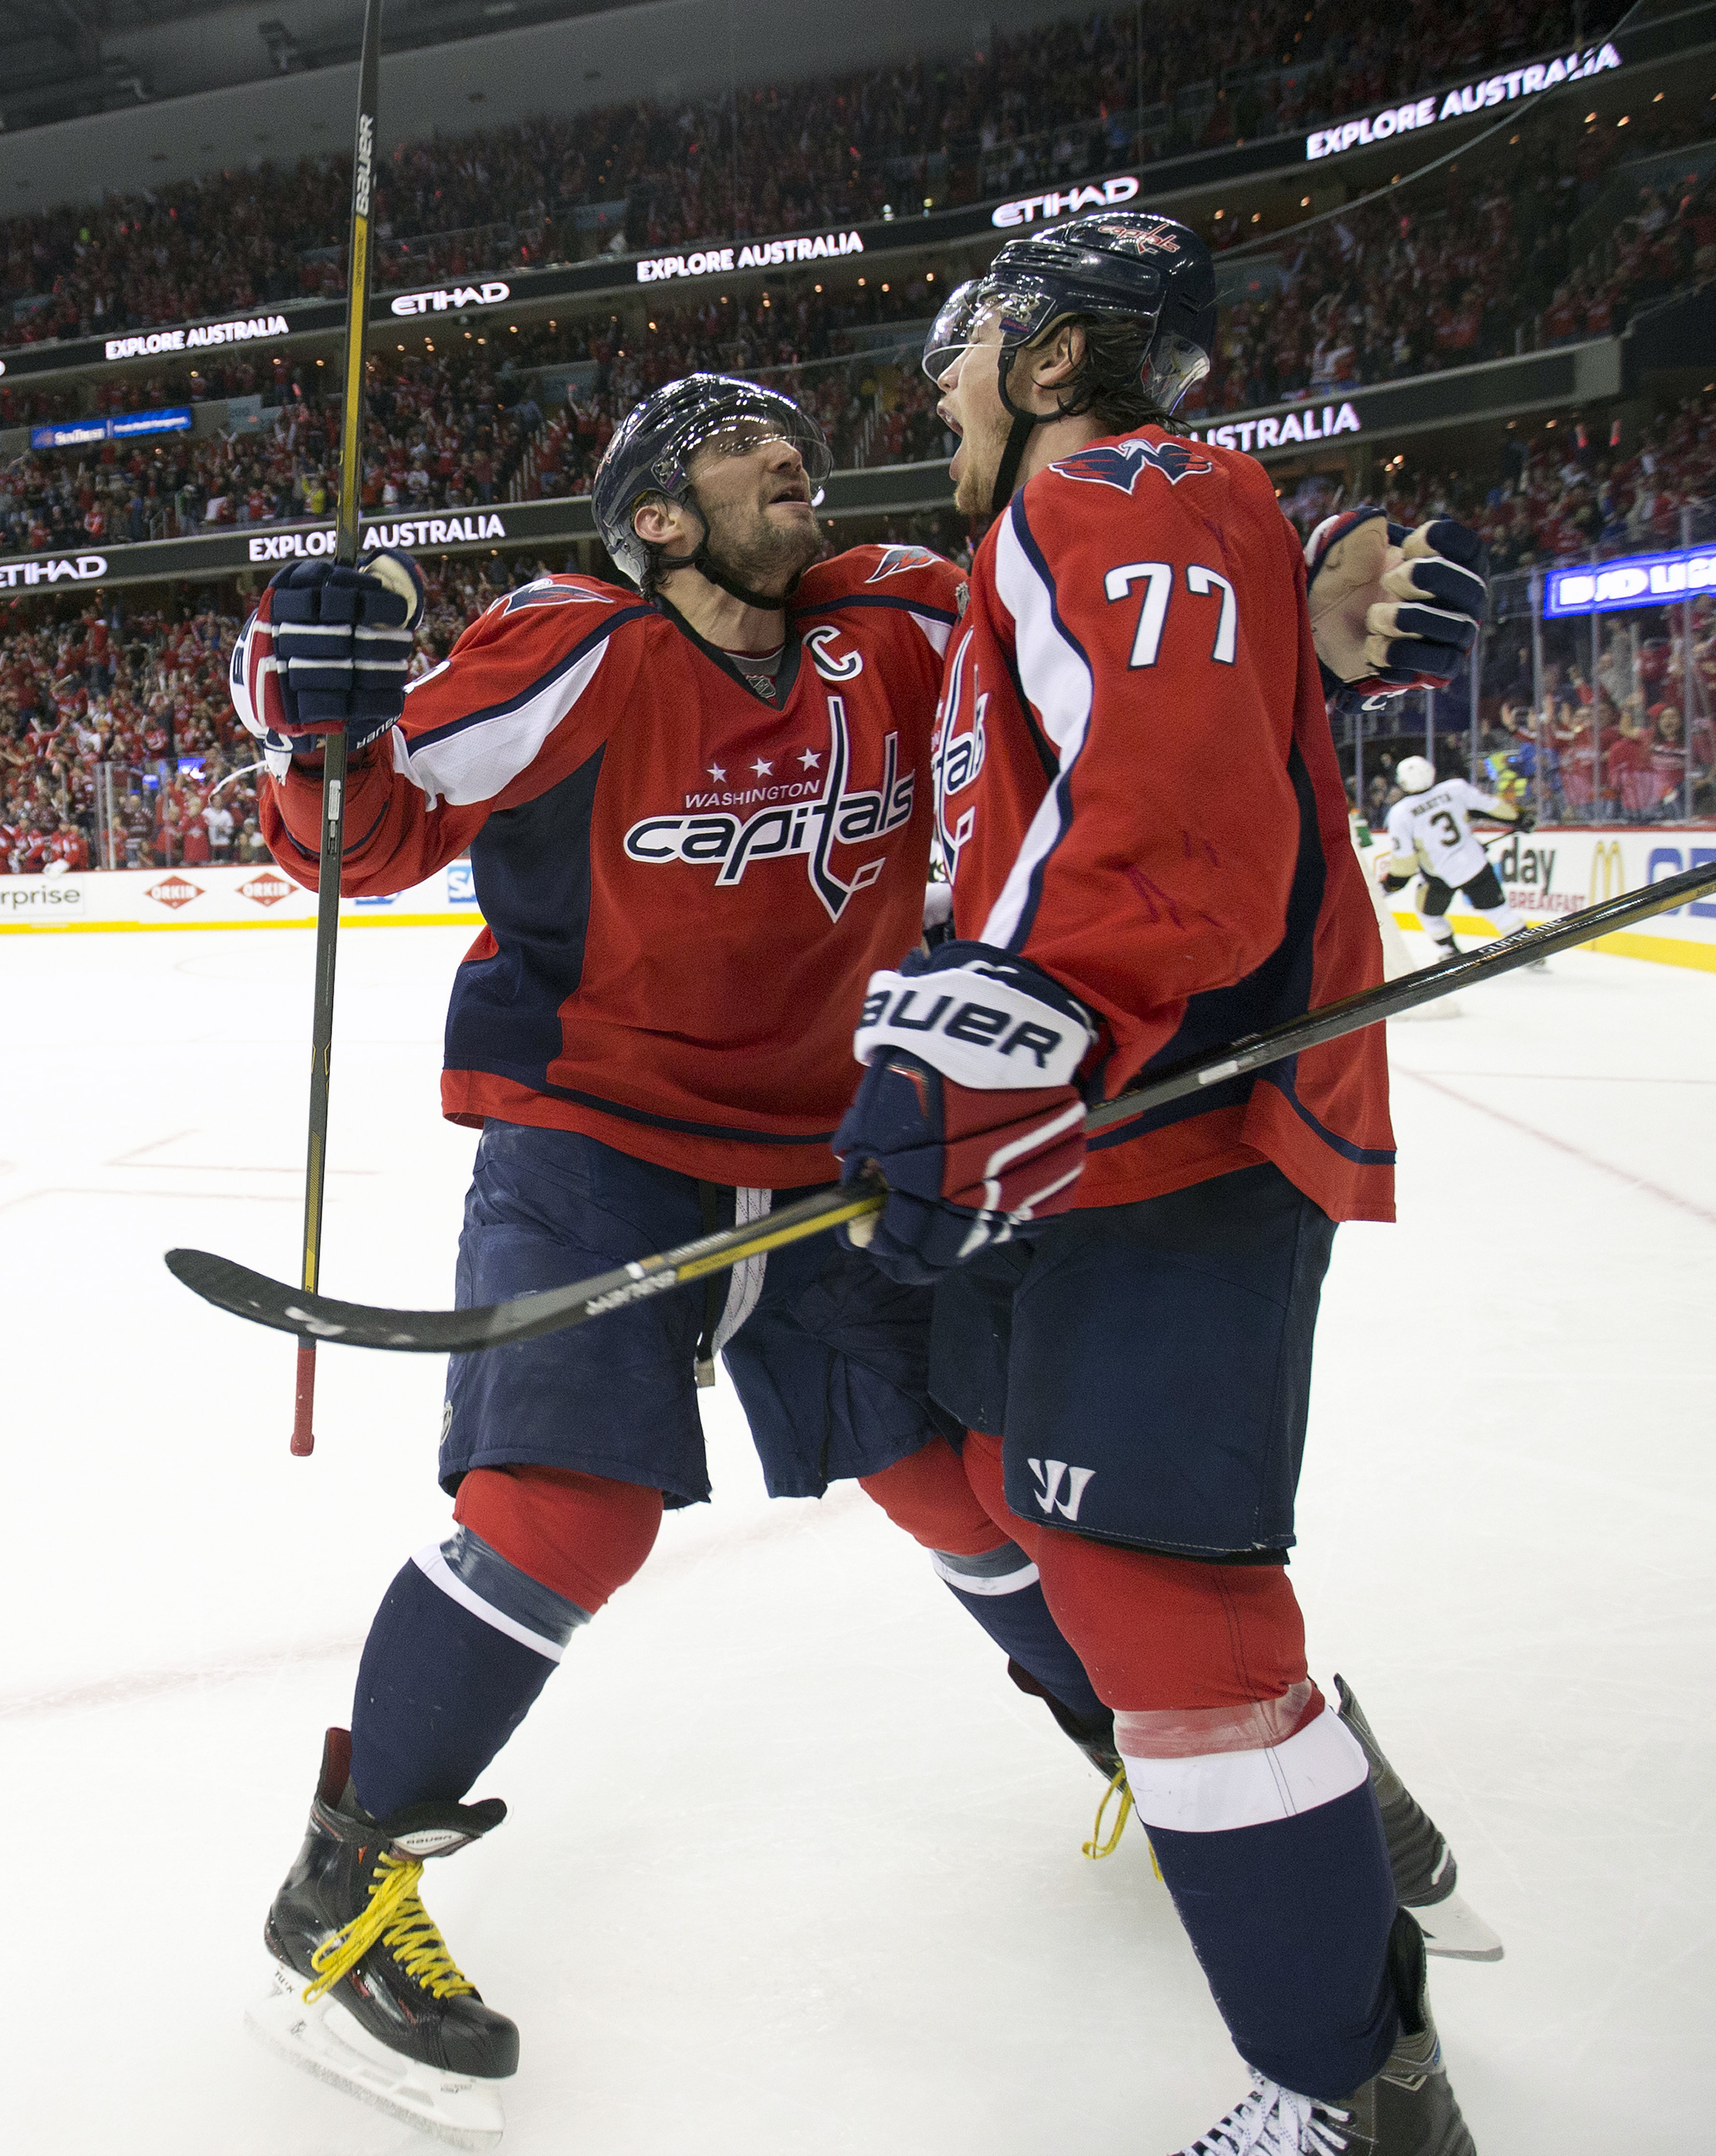 Washington Capitals right wing T.J. Oshie celebrates his goal with teammate Alex Ovechkin (8) against the Pittsburgh Penguins during the second period of Game 1 in an NHL hockey Stanley Cup Eastern Conference semifinals Thursday, April 28, 2016 in Washing